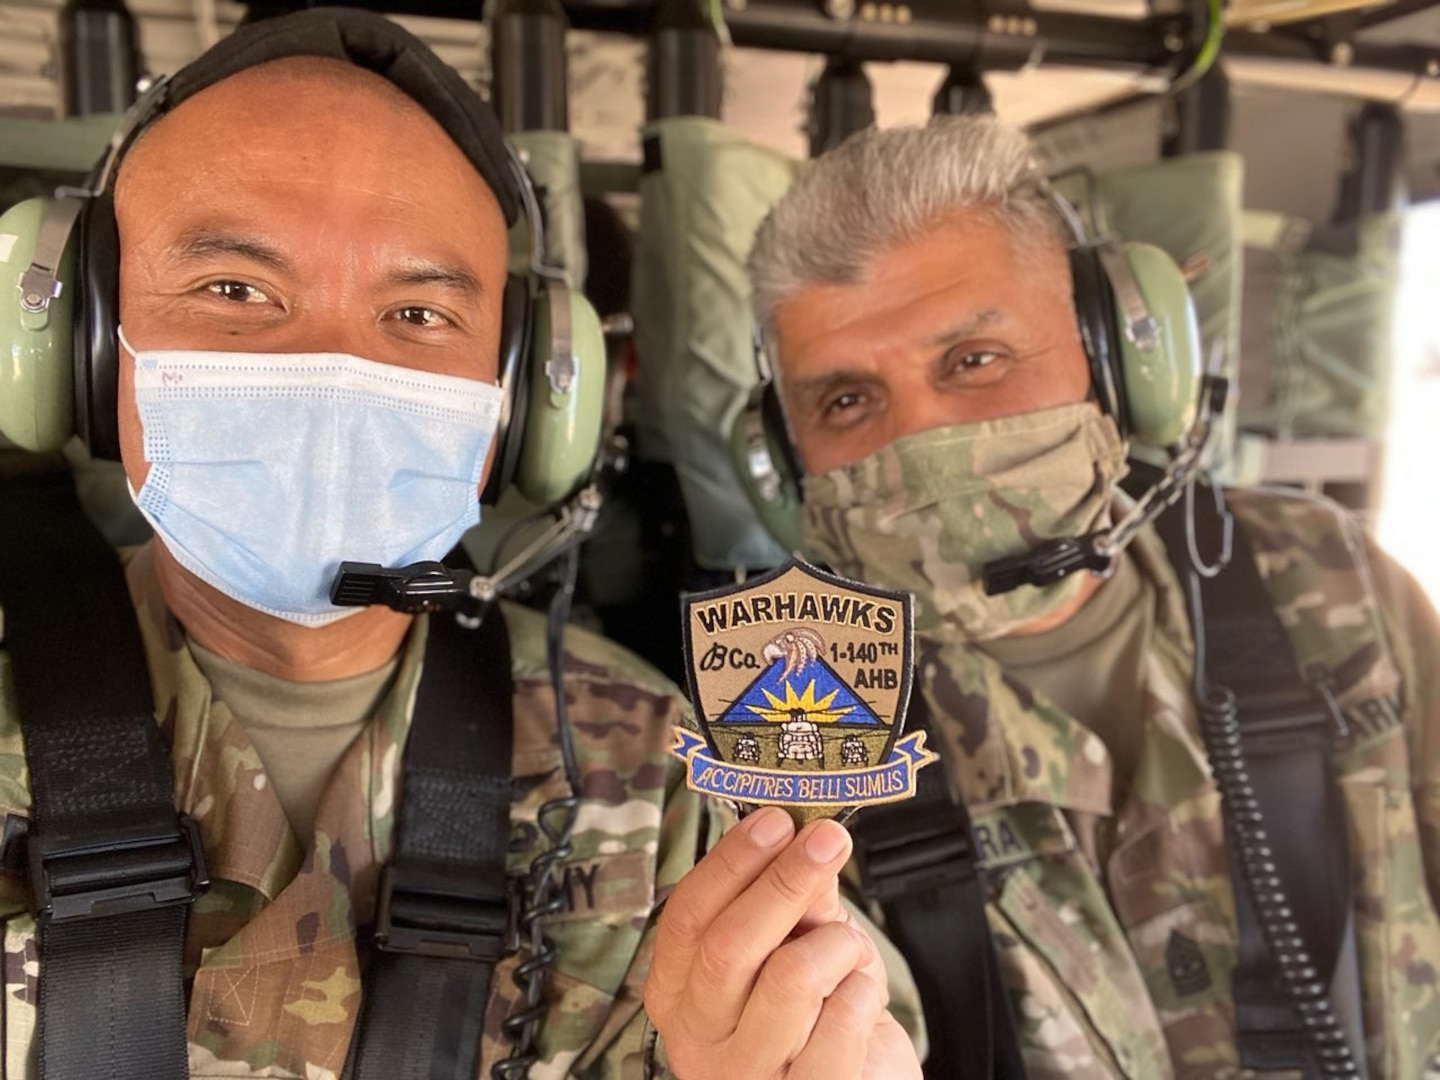 Two soldiers pose for a close-up photo together